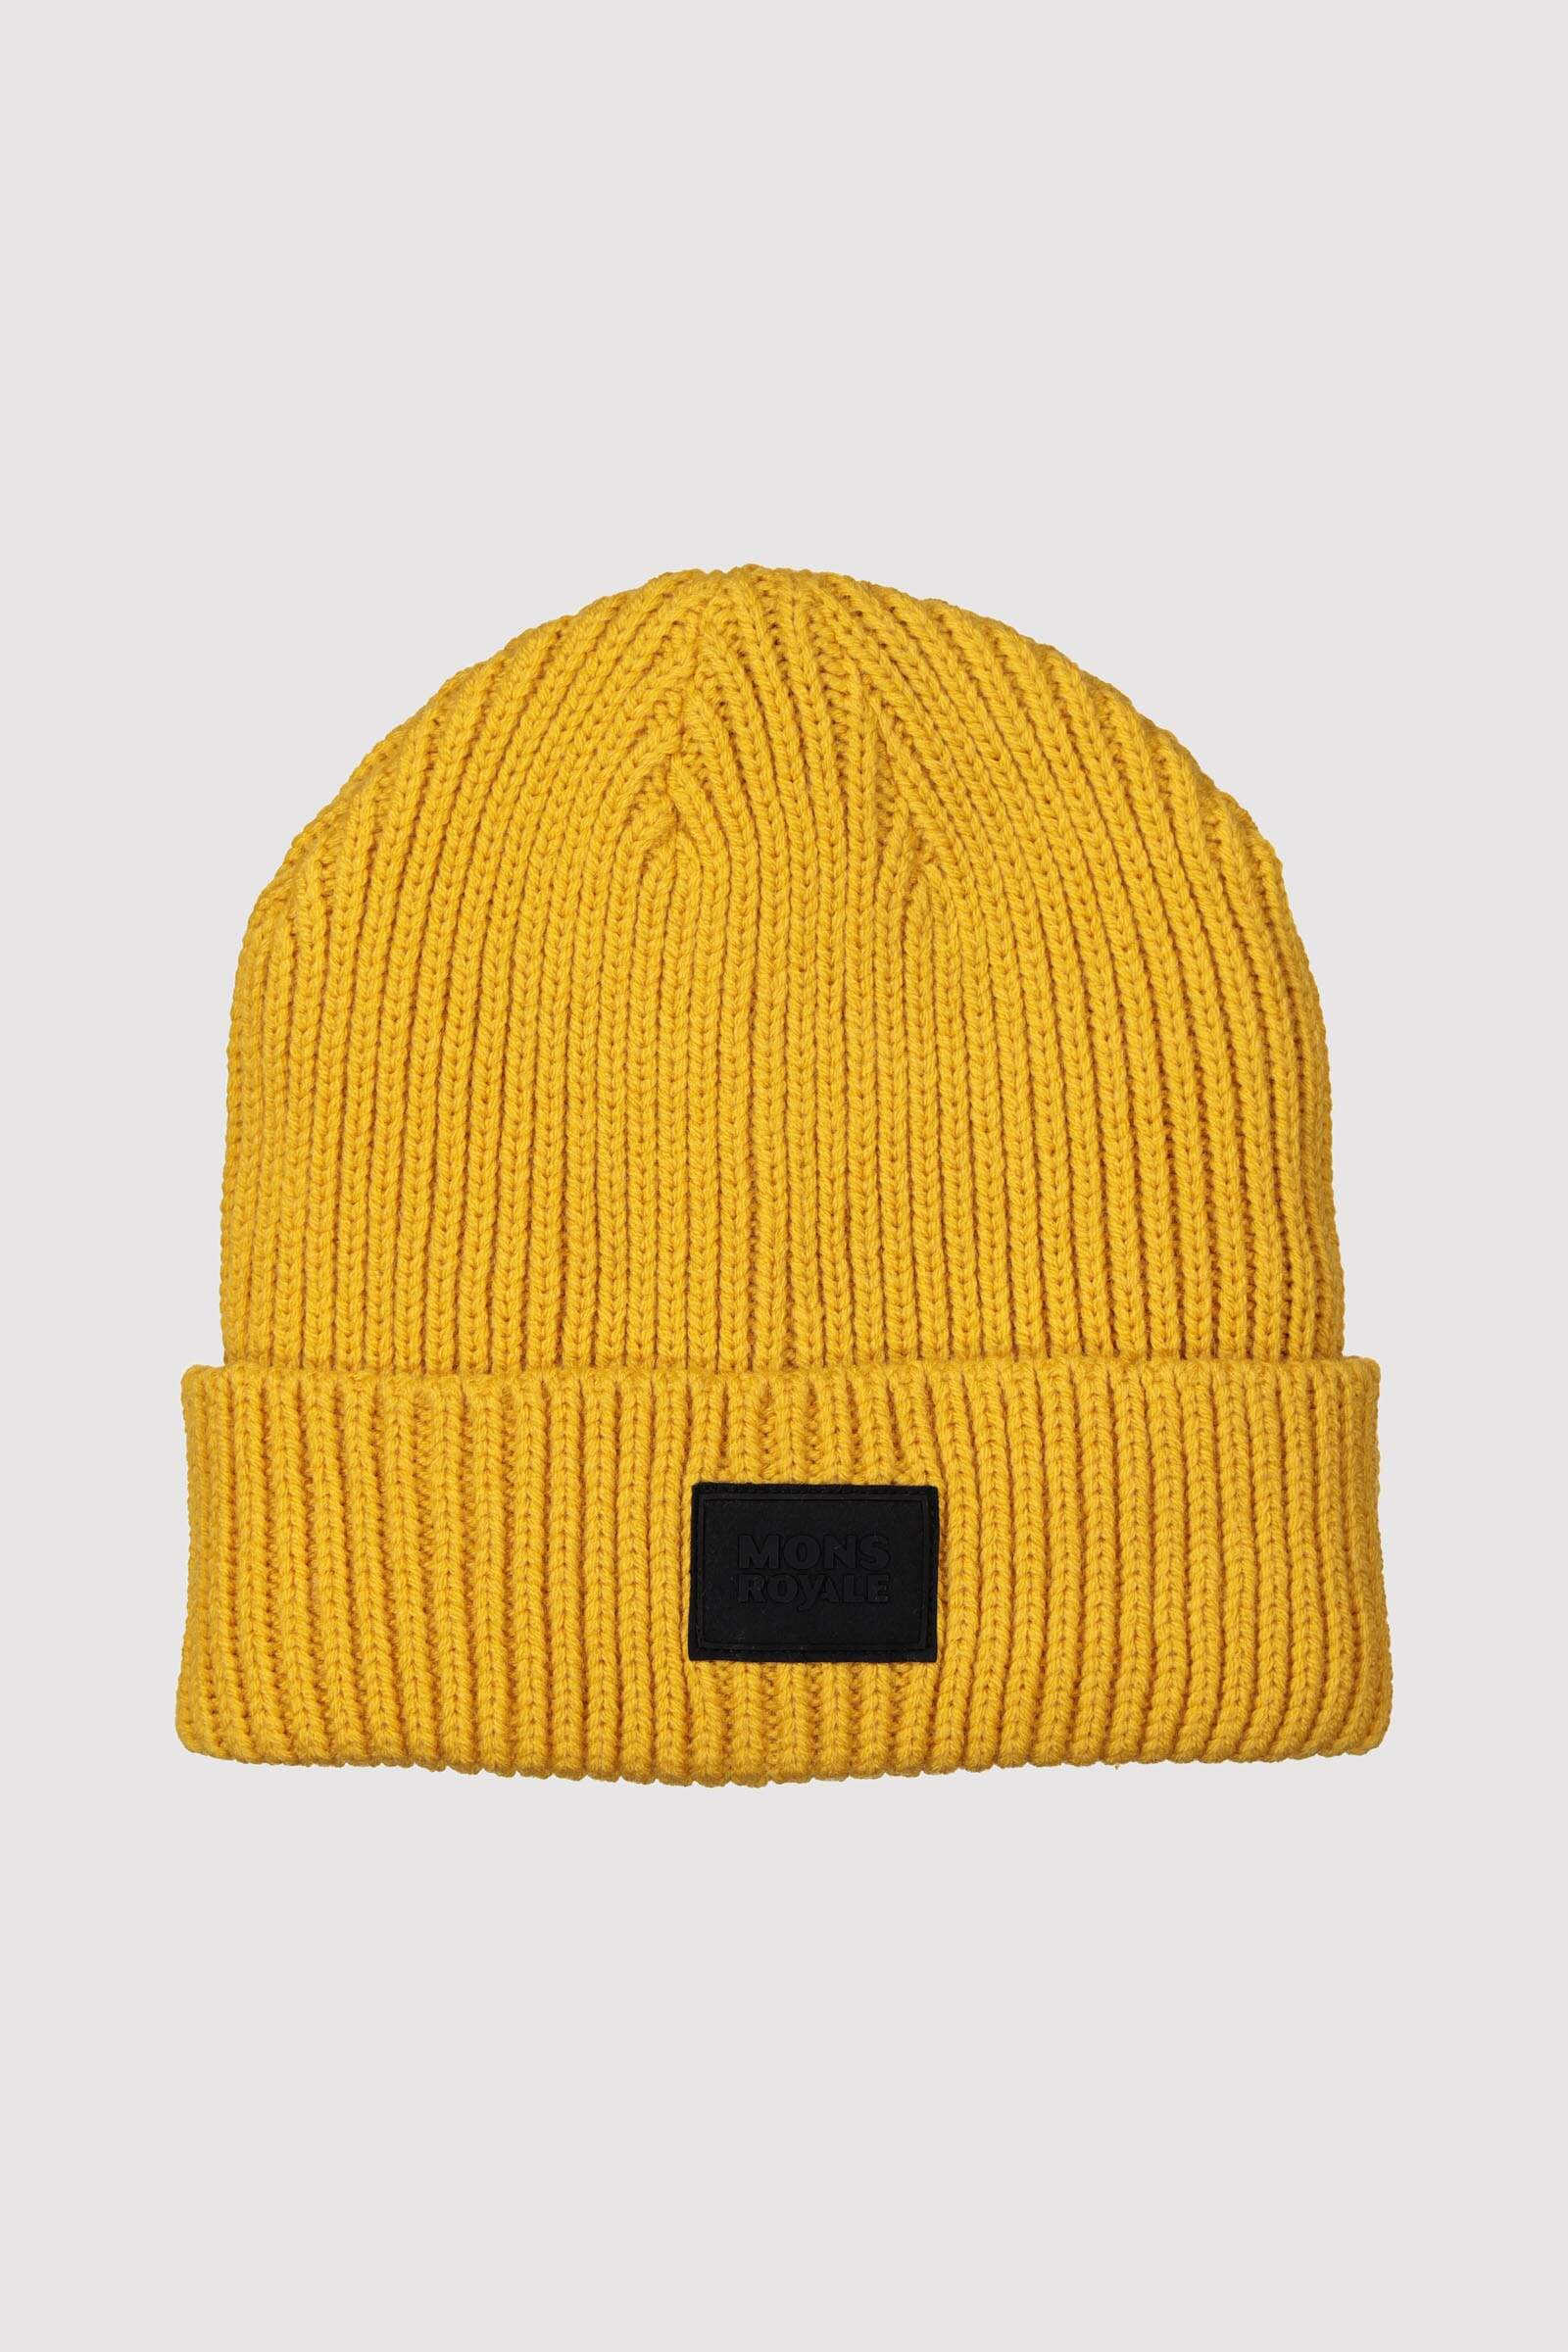 Fisherman's Beanie - Gold